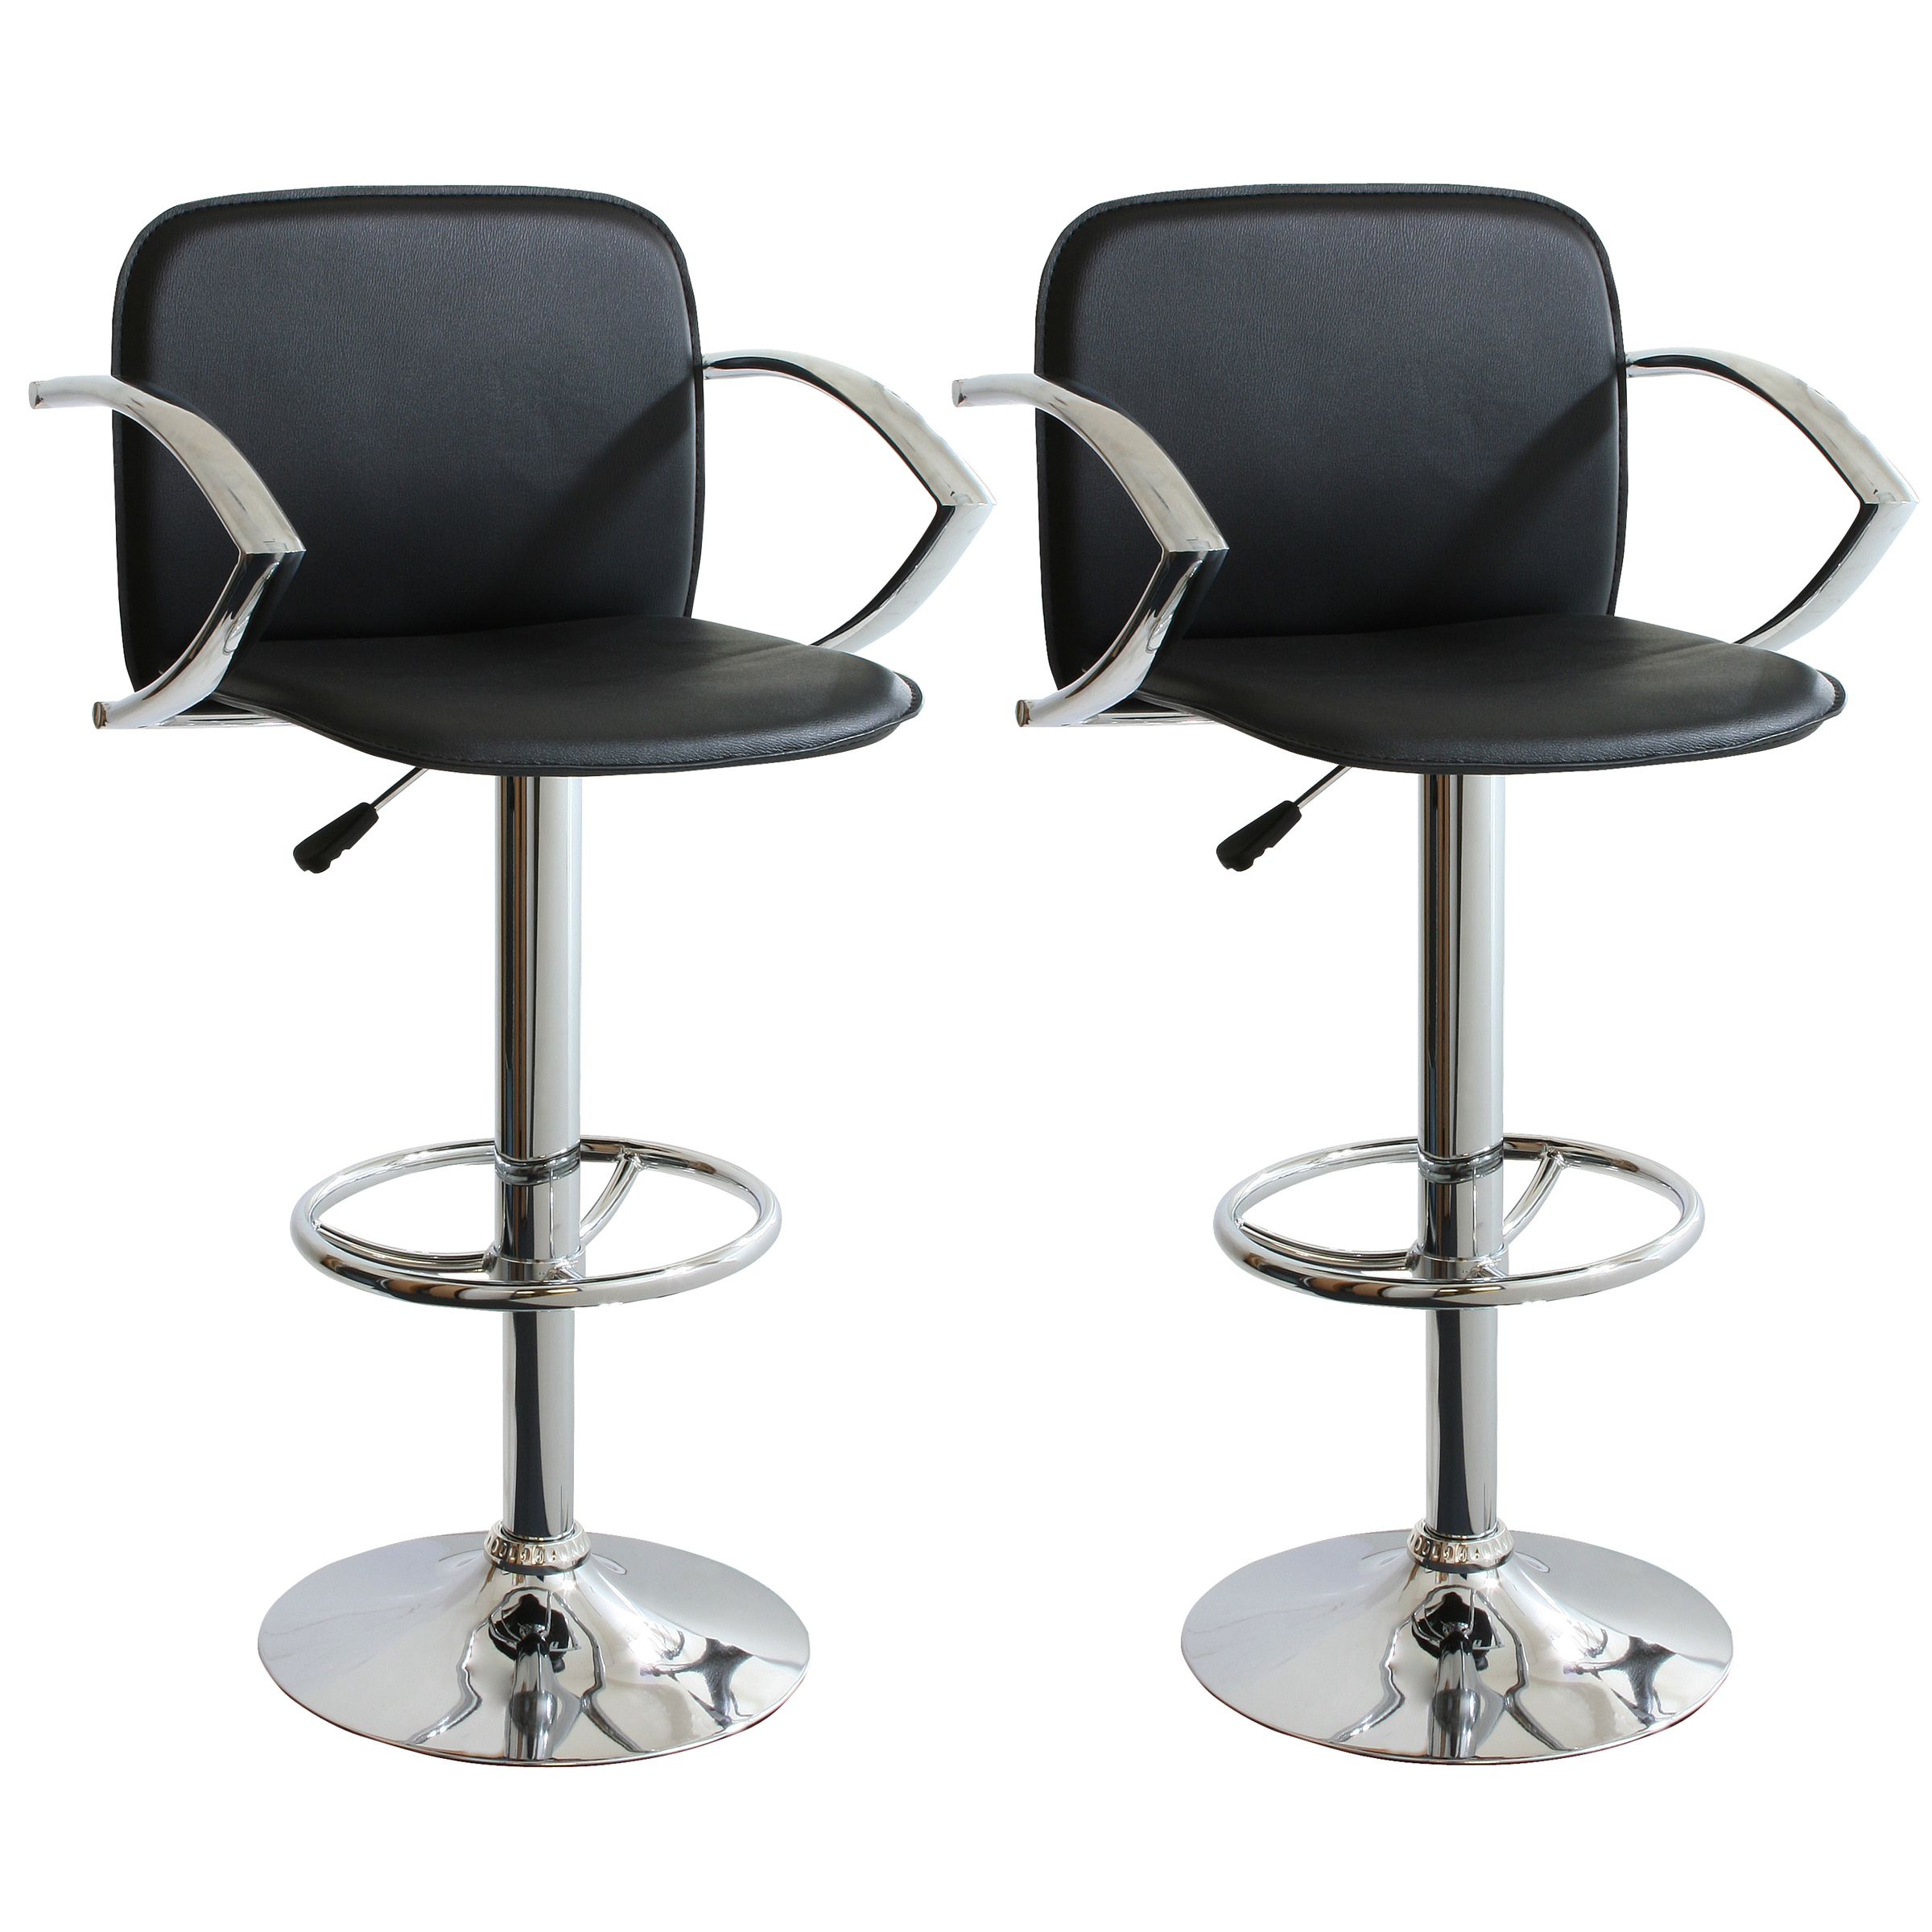 Classic Traditional 2 Piece Adjustable Height Black Bar Stool Retro Style